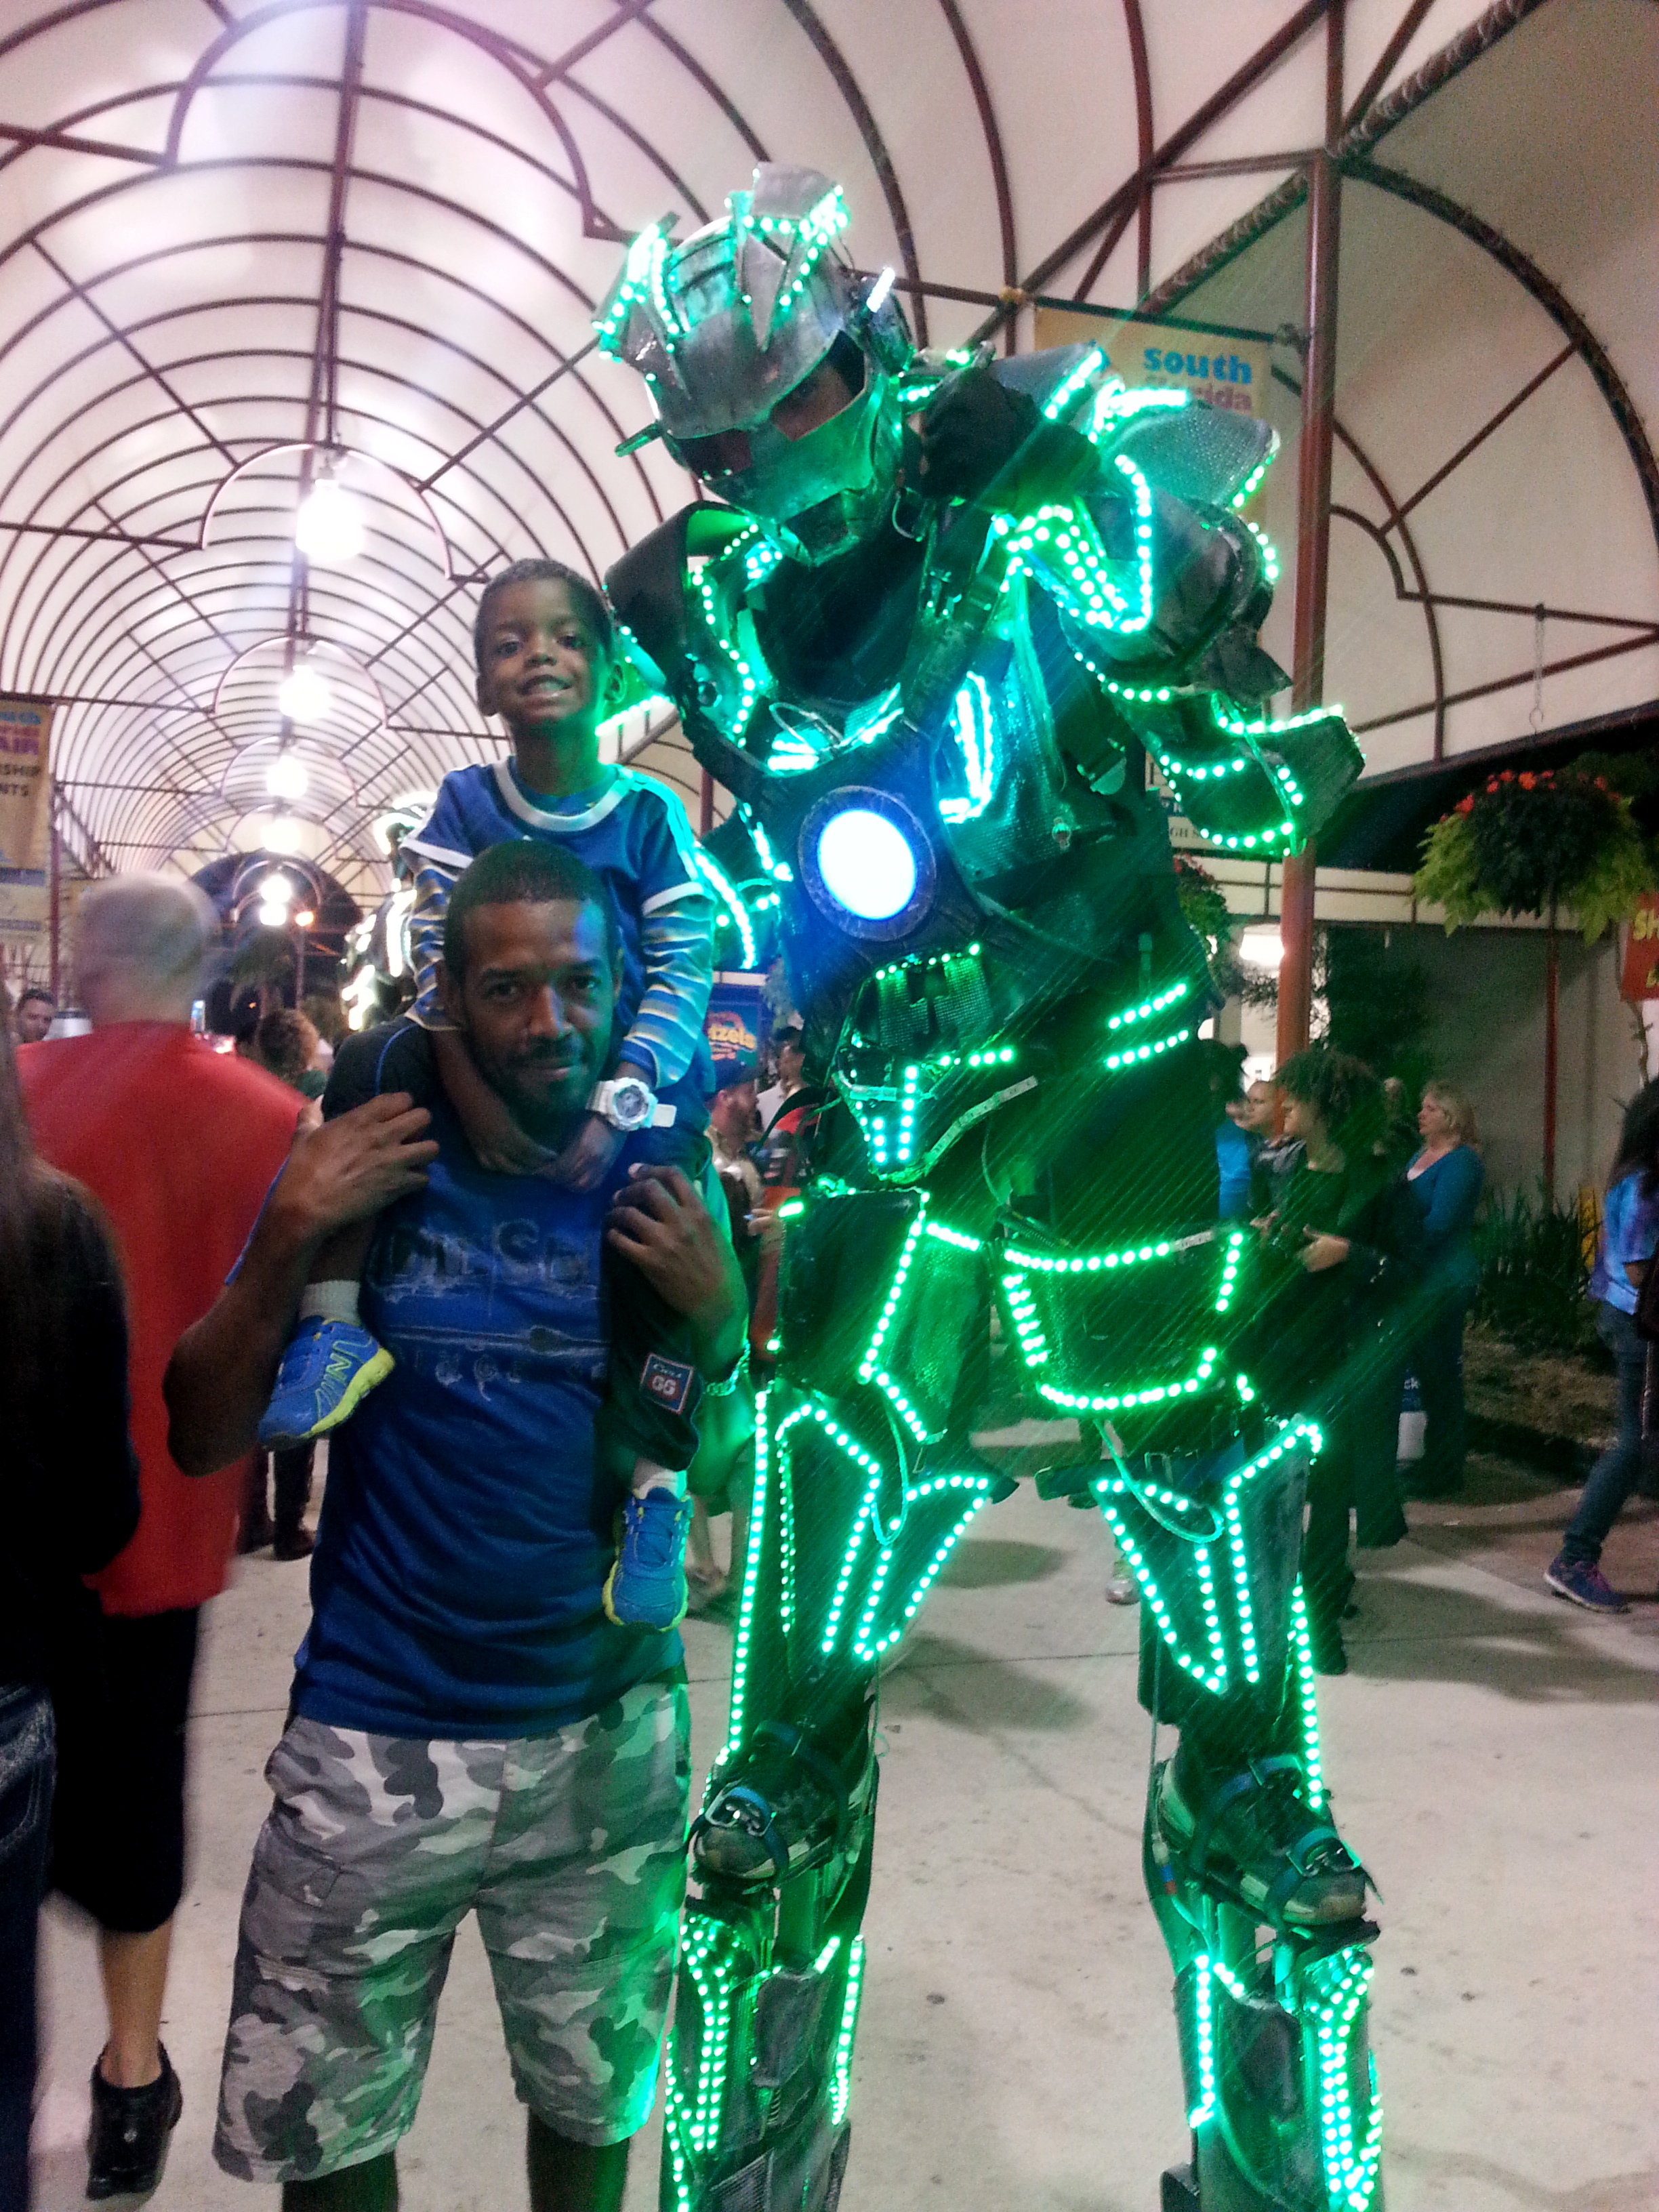 south florida fair LED robots daddy and gabe